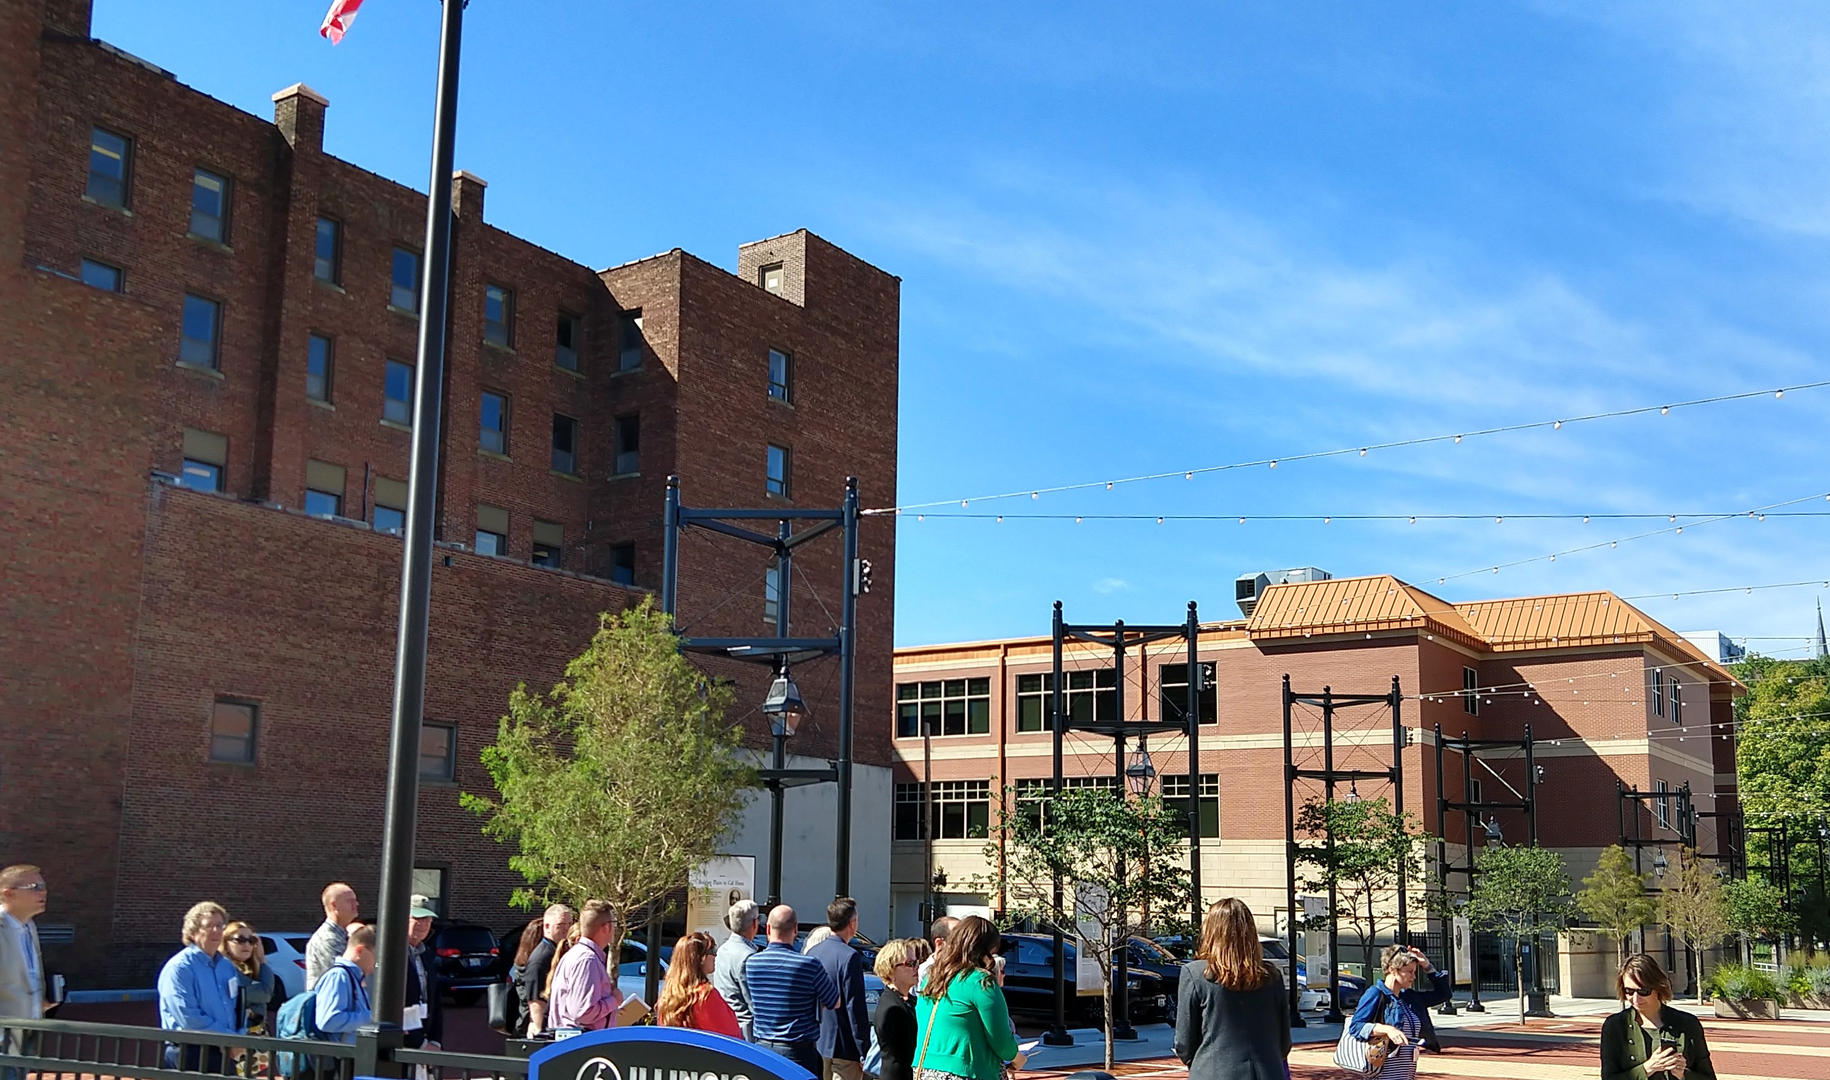 Learning about the Bicentennial Plaza during the Springfield Walking Tour mobile workshop (photo by Ben LeRoy)